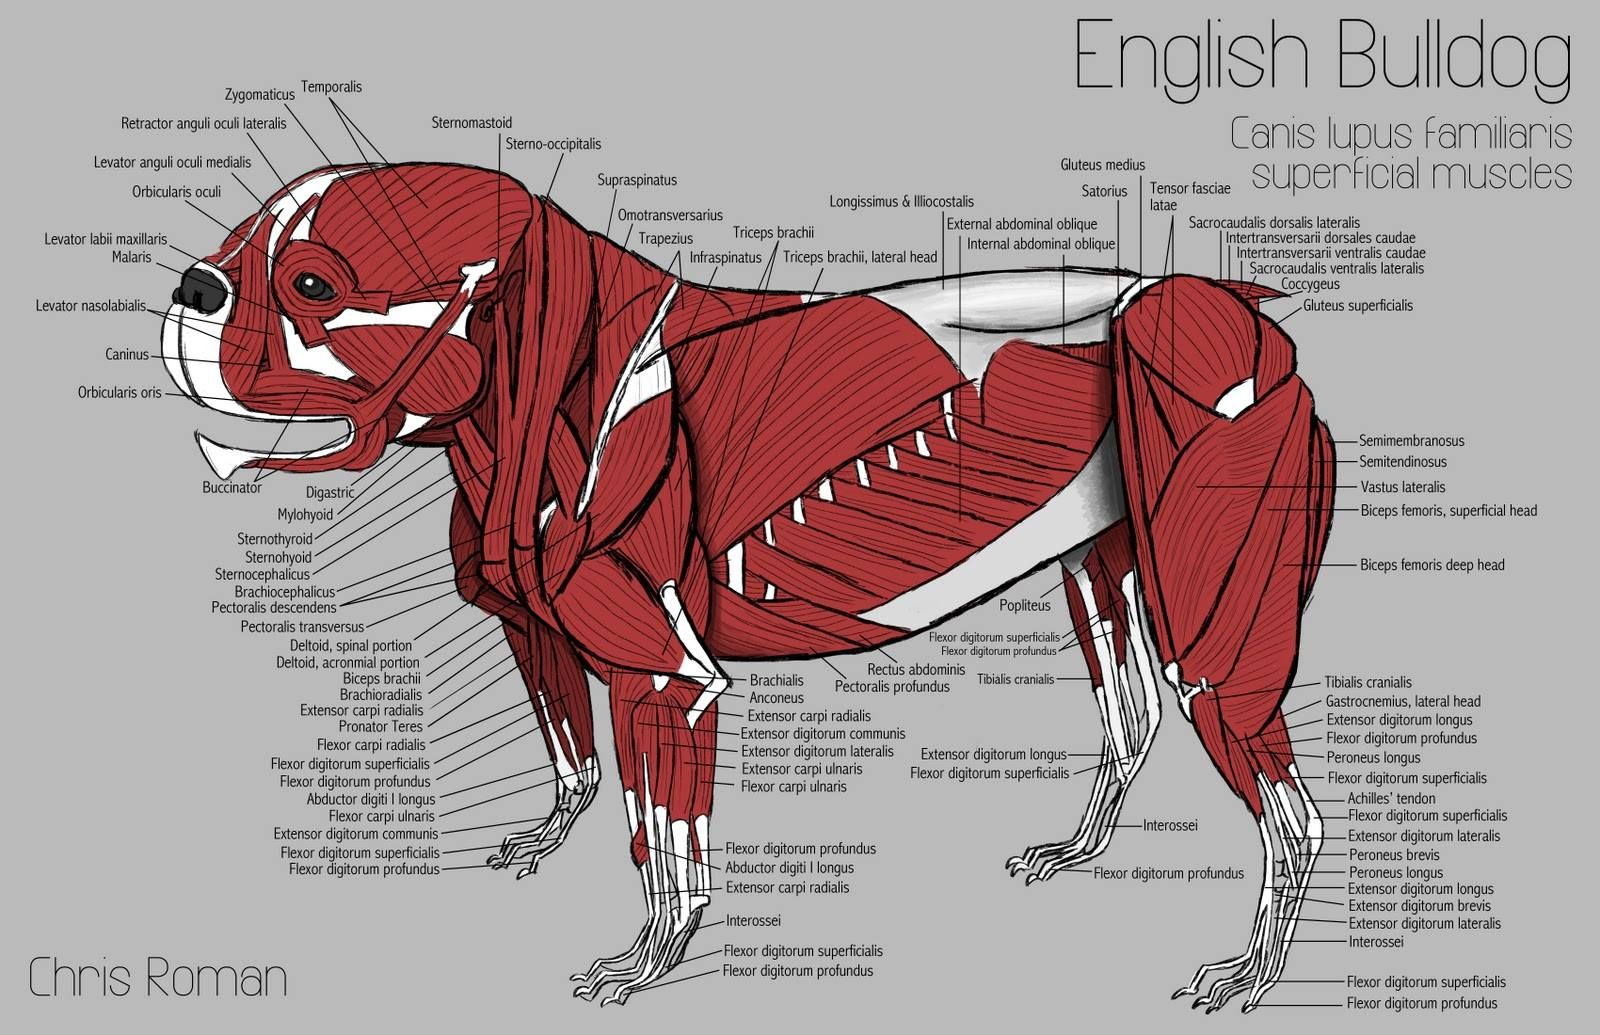 medium resolution of the superficial muscles of the english bulldog